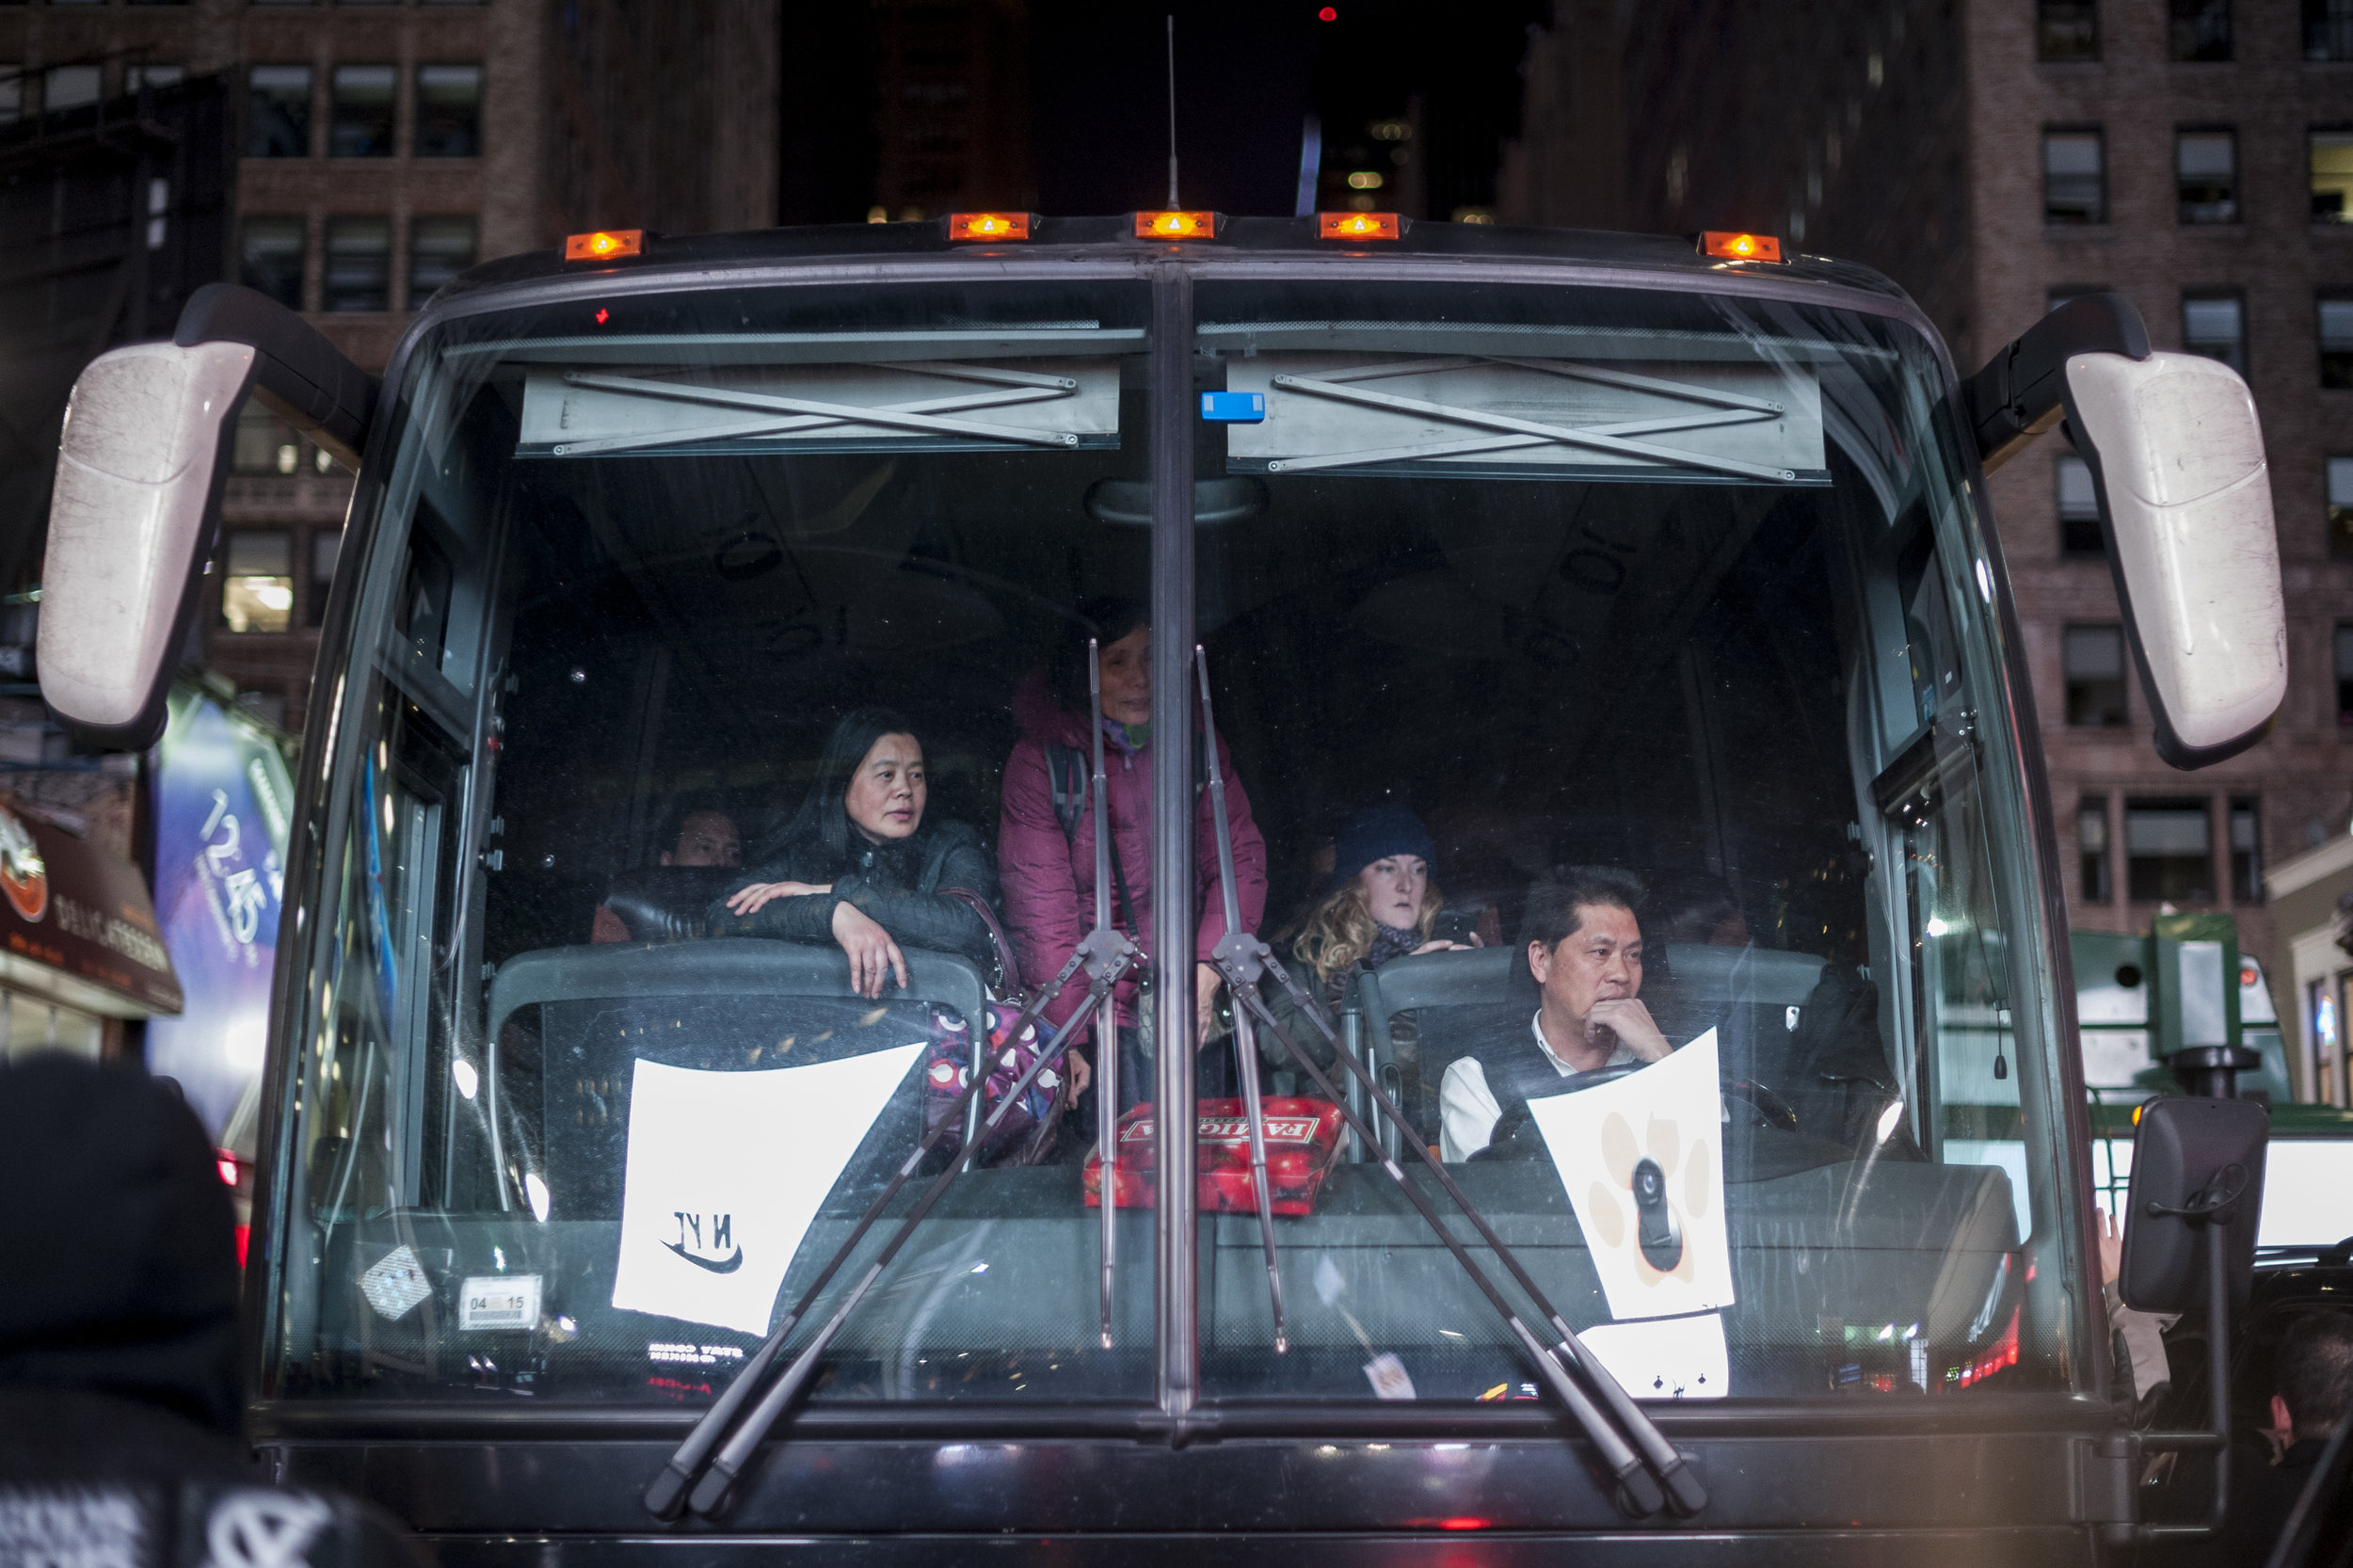 Bus passengers look on during a demonstration on December 5th, 2014. Weeks of protest followed a Staten Island grand jury's decision on December 3rd 2014 not to indict Officer Daniel Pantaleo in the killing of Eric Garner.